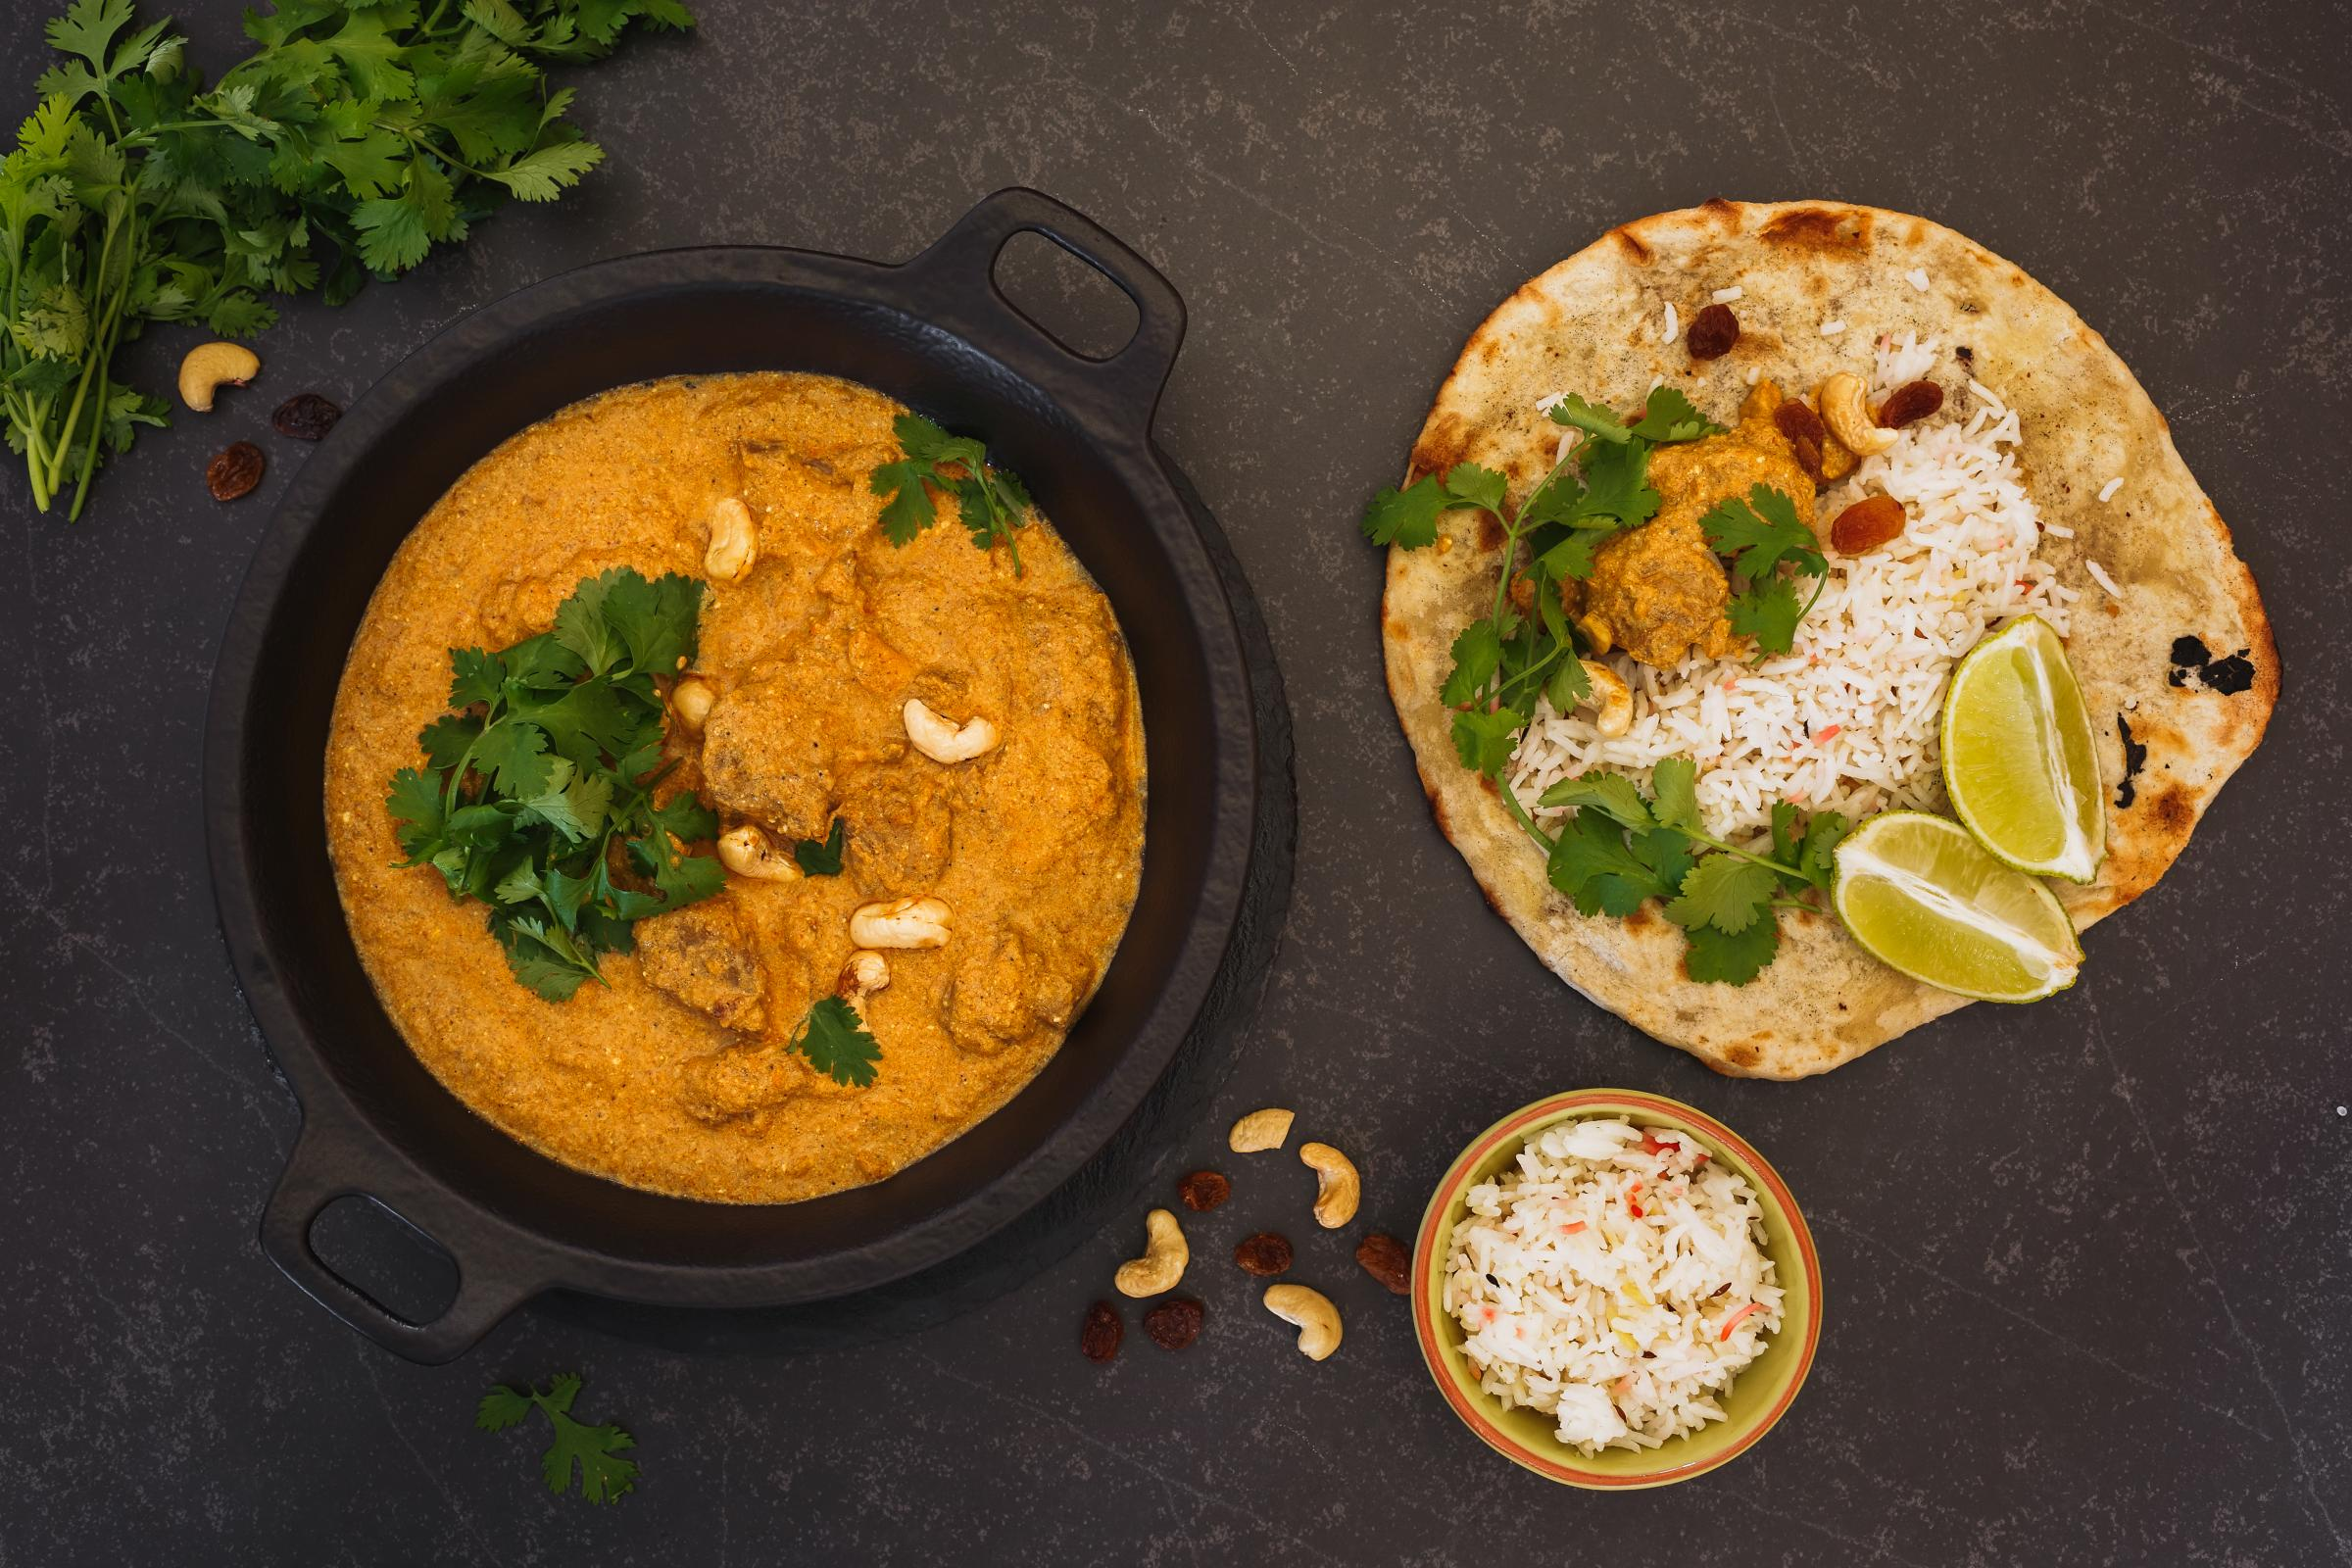 Indian curry meal, lamb korma with cashew nuts, rice and peshwari naan